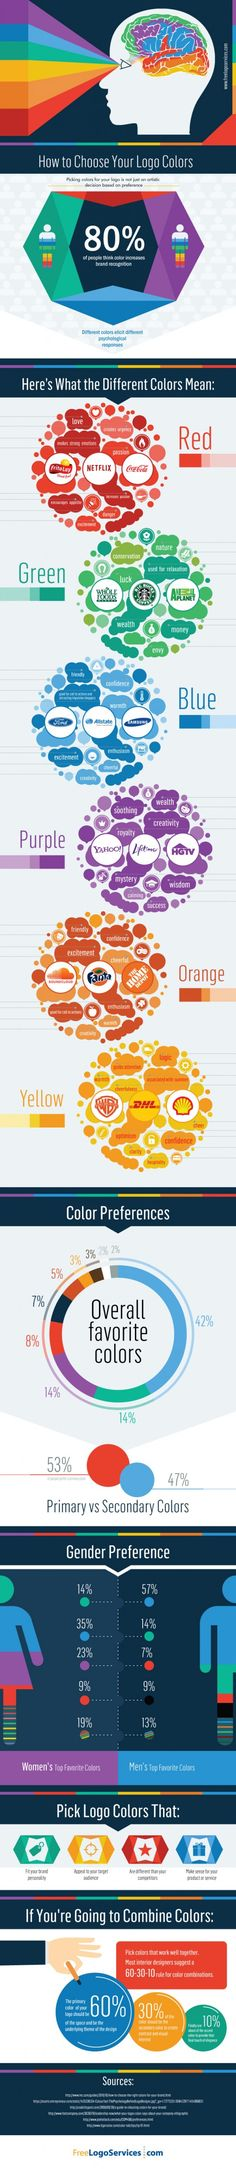 Psychology and Design: How to Choose the Colour For Your Logo [Infographic]